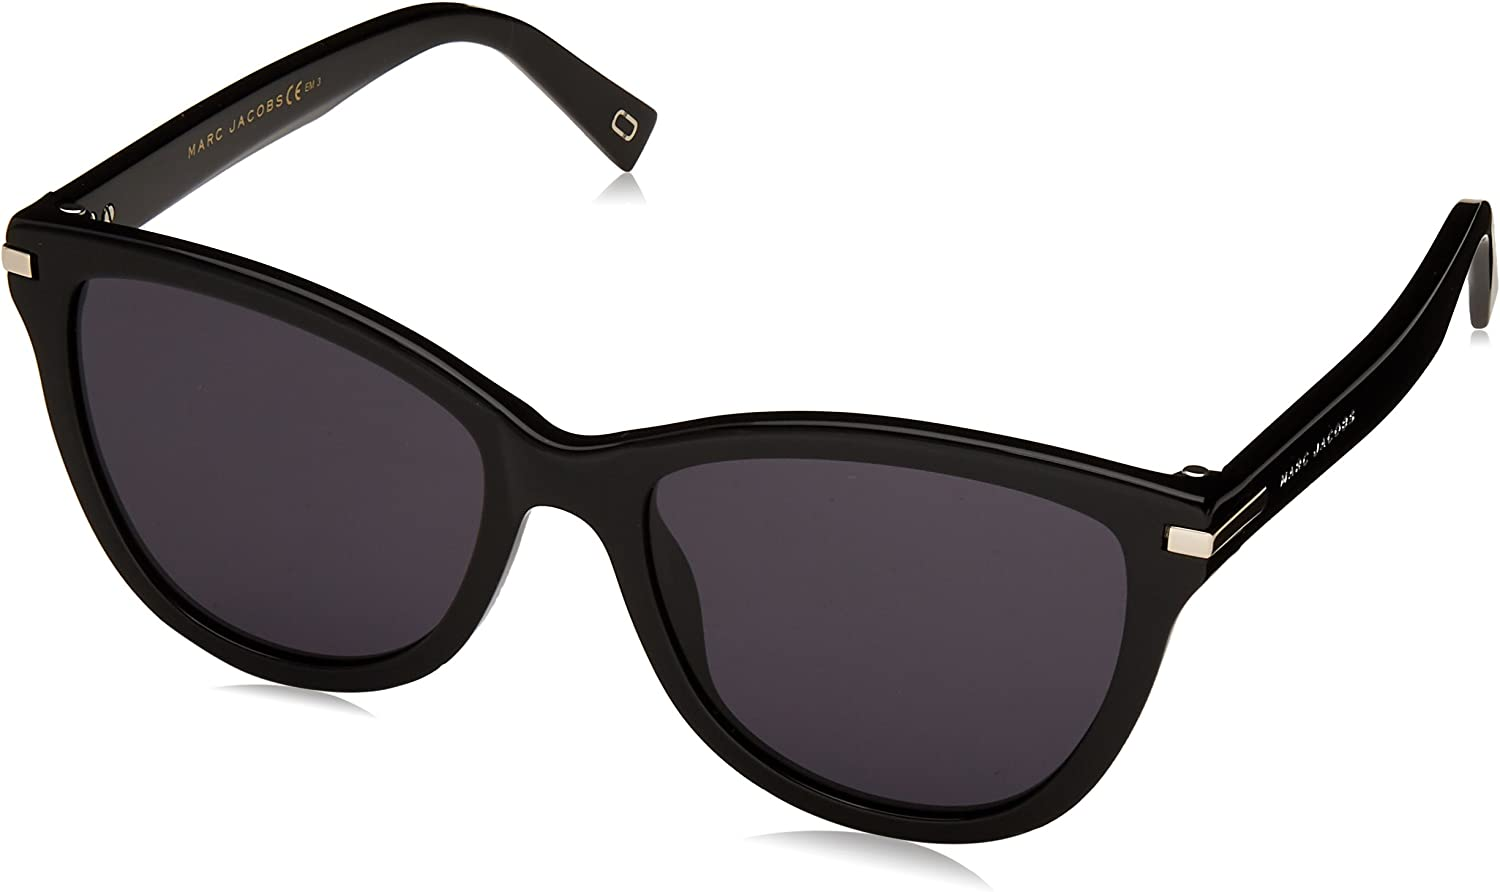 Marc Jacobs Women's Marc187s Polarized Cateye Sunglasses, Black, 54 mm